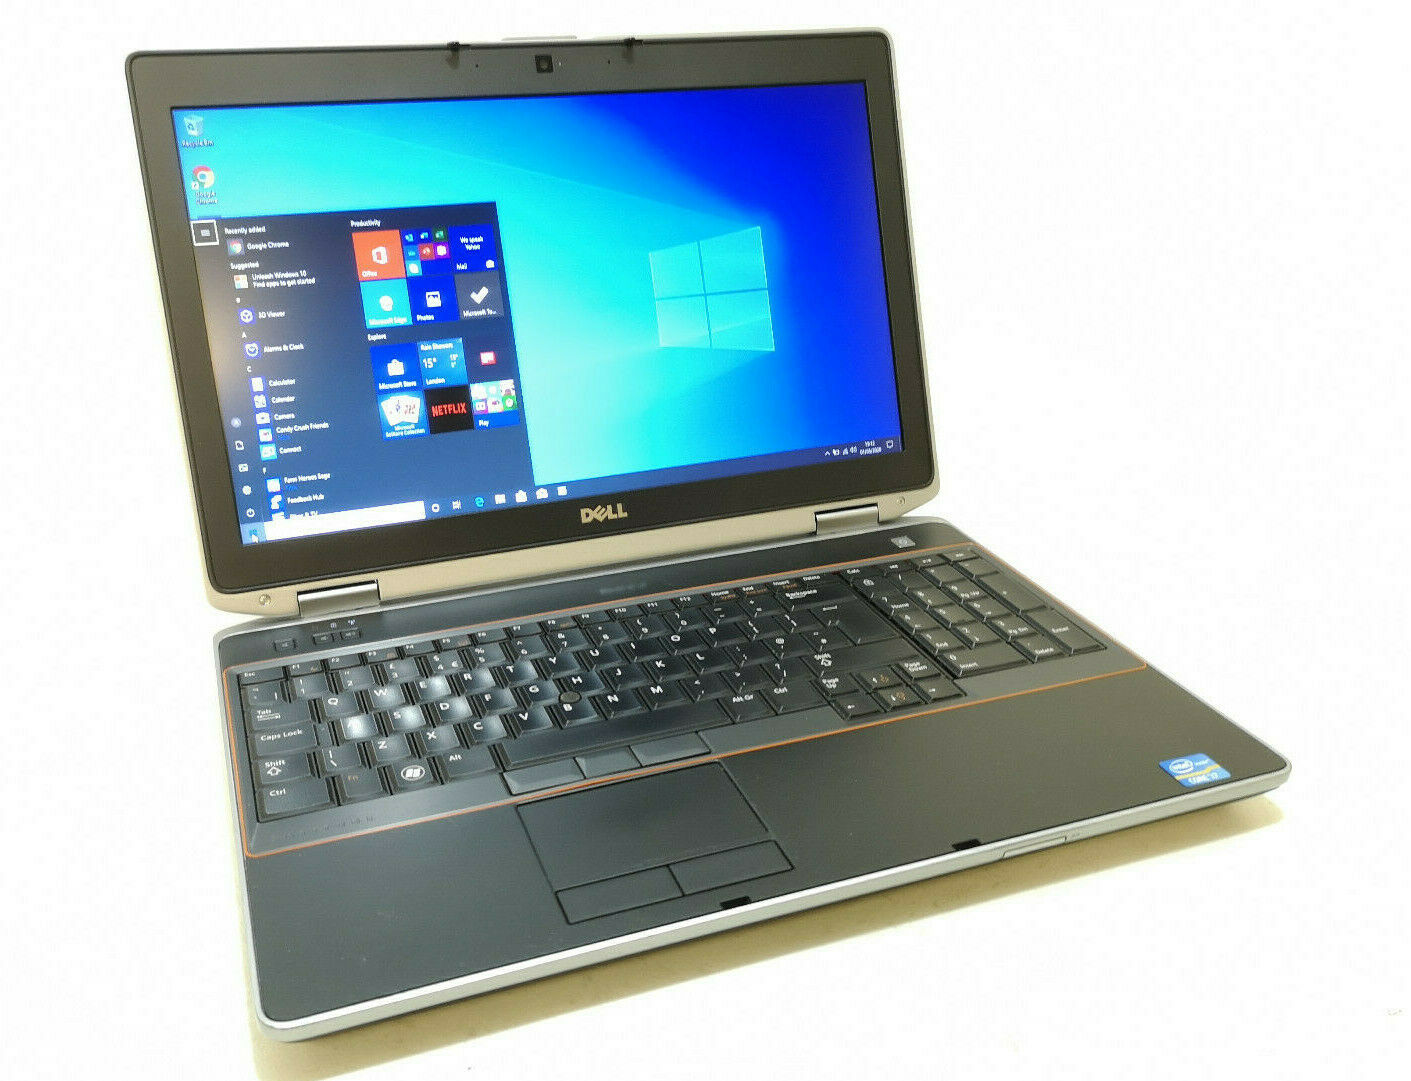 Dell Latitude E6520 No 1